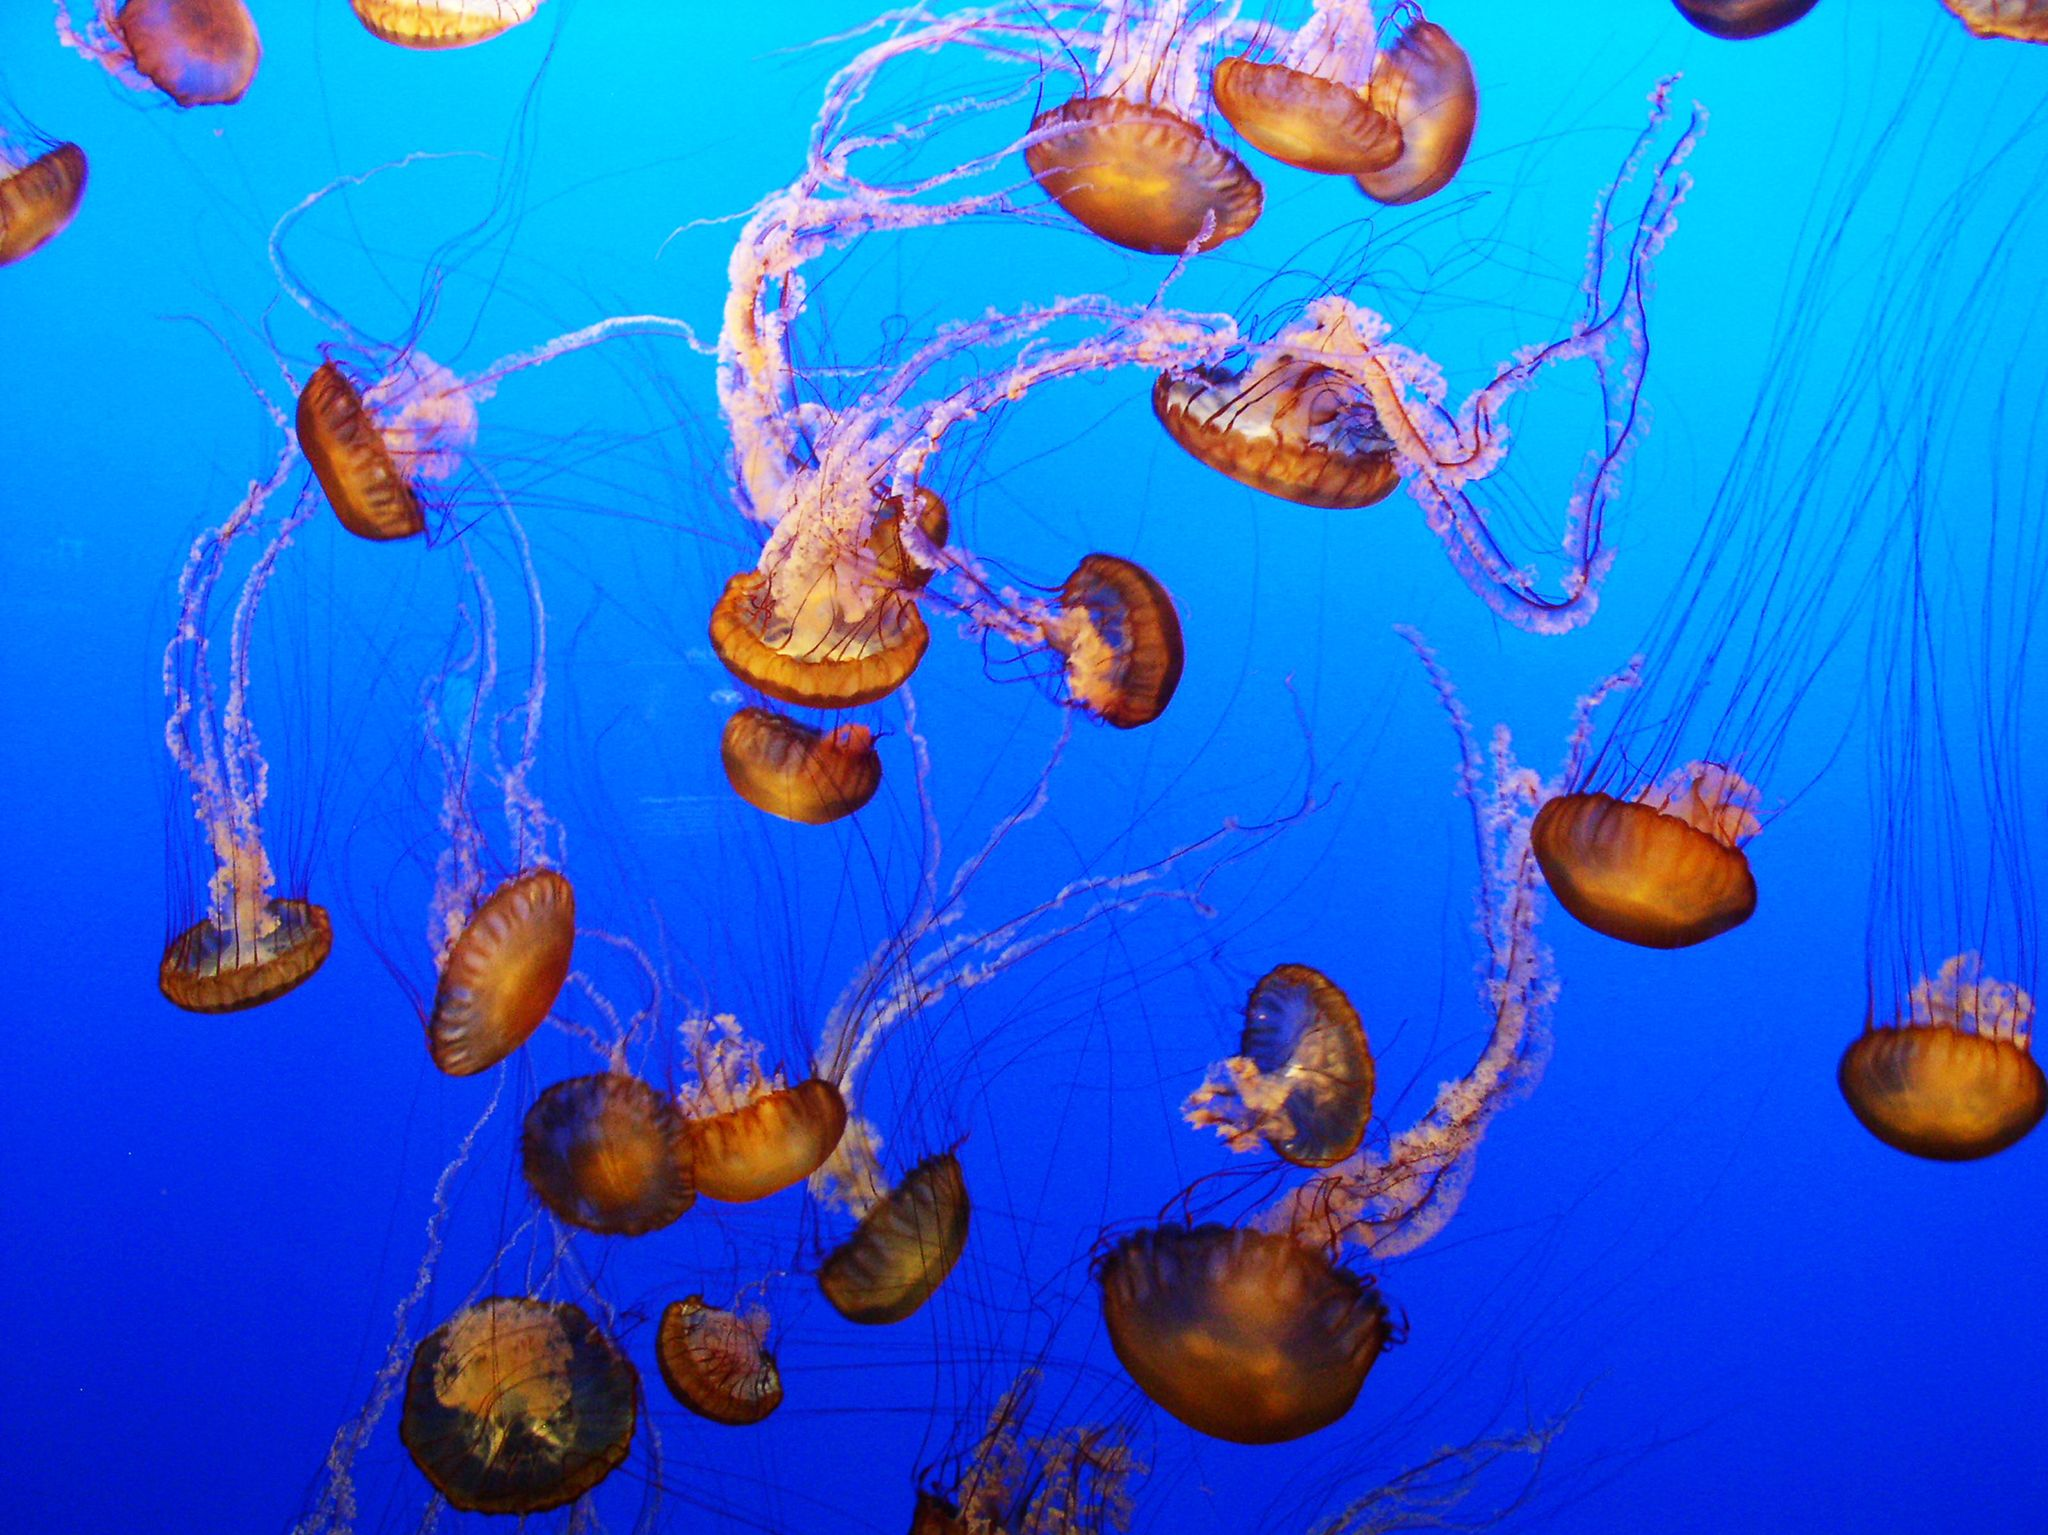 Chrysaora jellyfish swarm. This image is from Man V. Animal. [Photo of the day - September 2017]